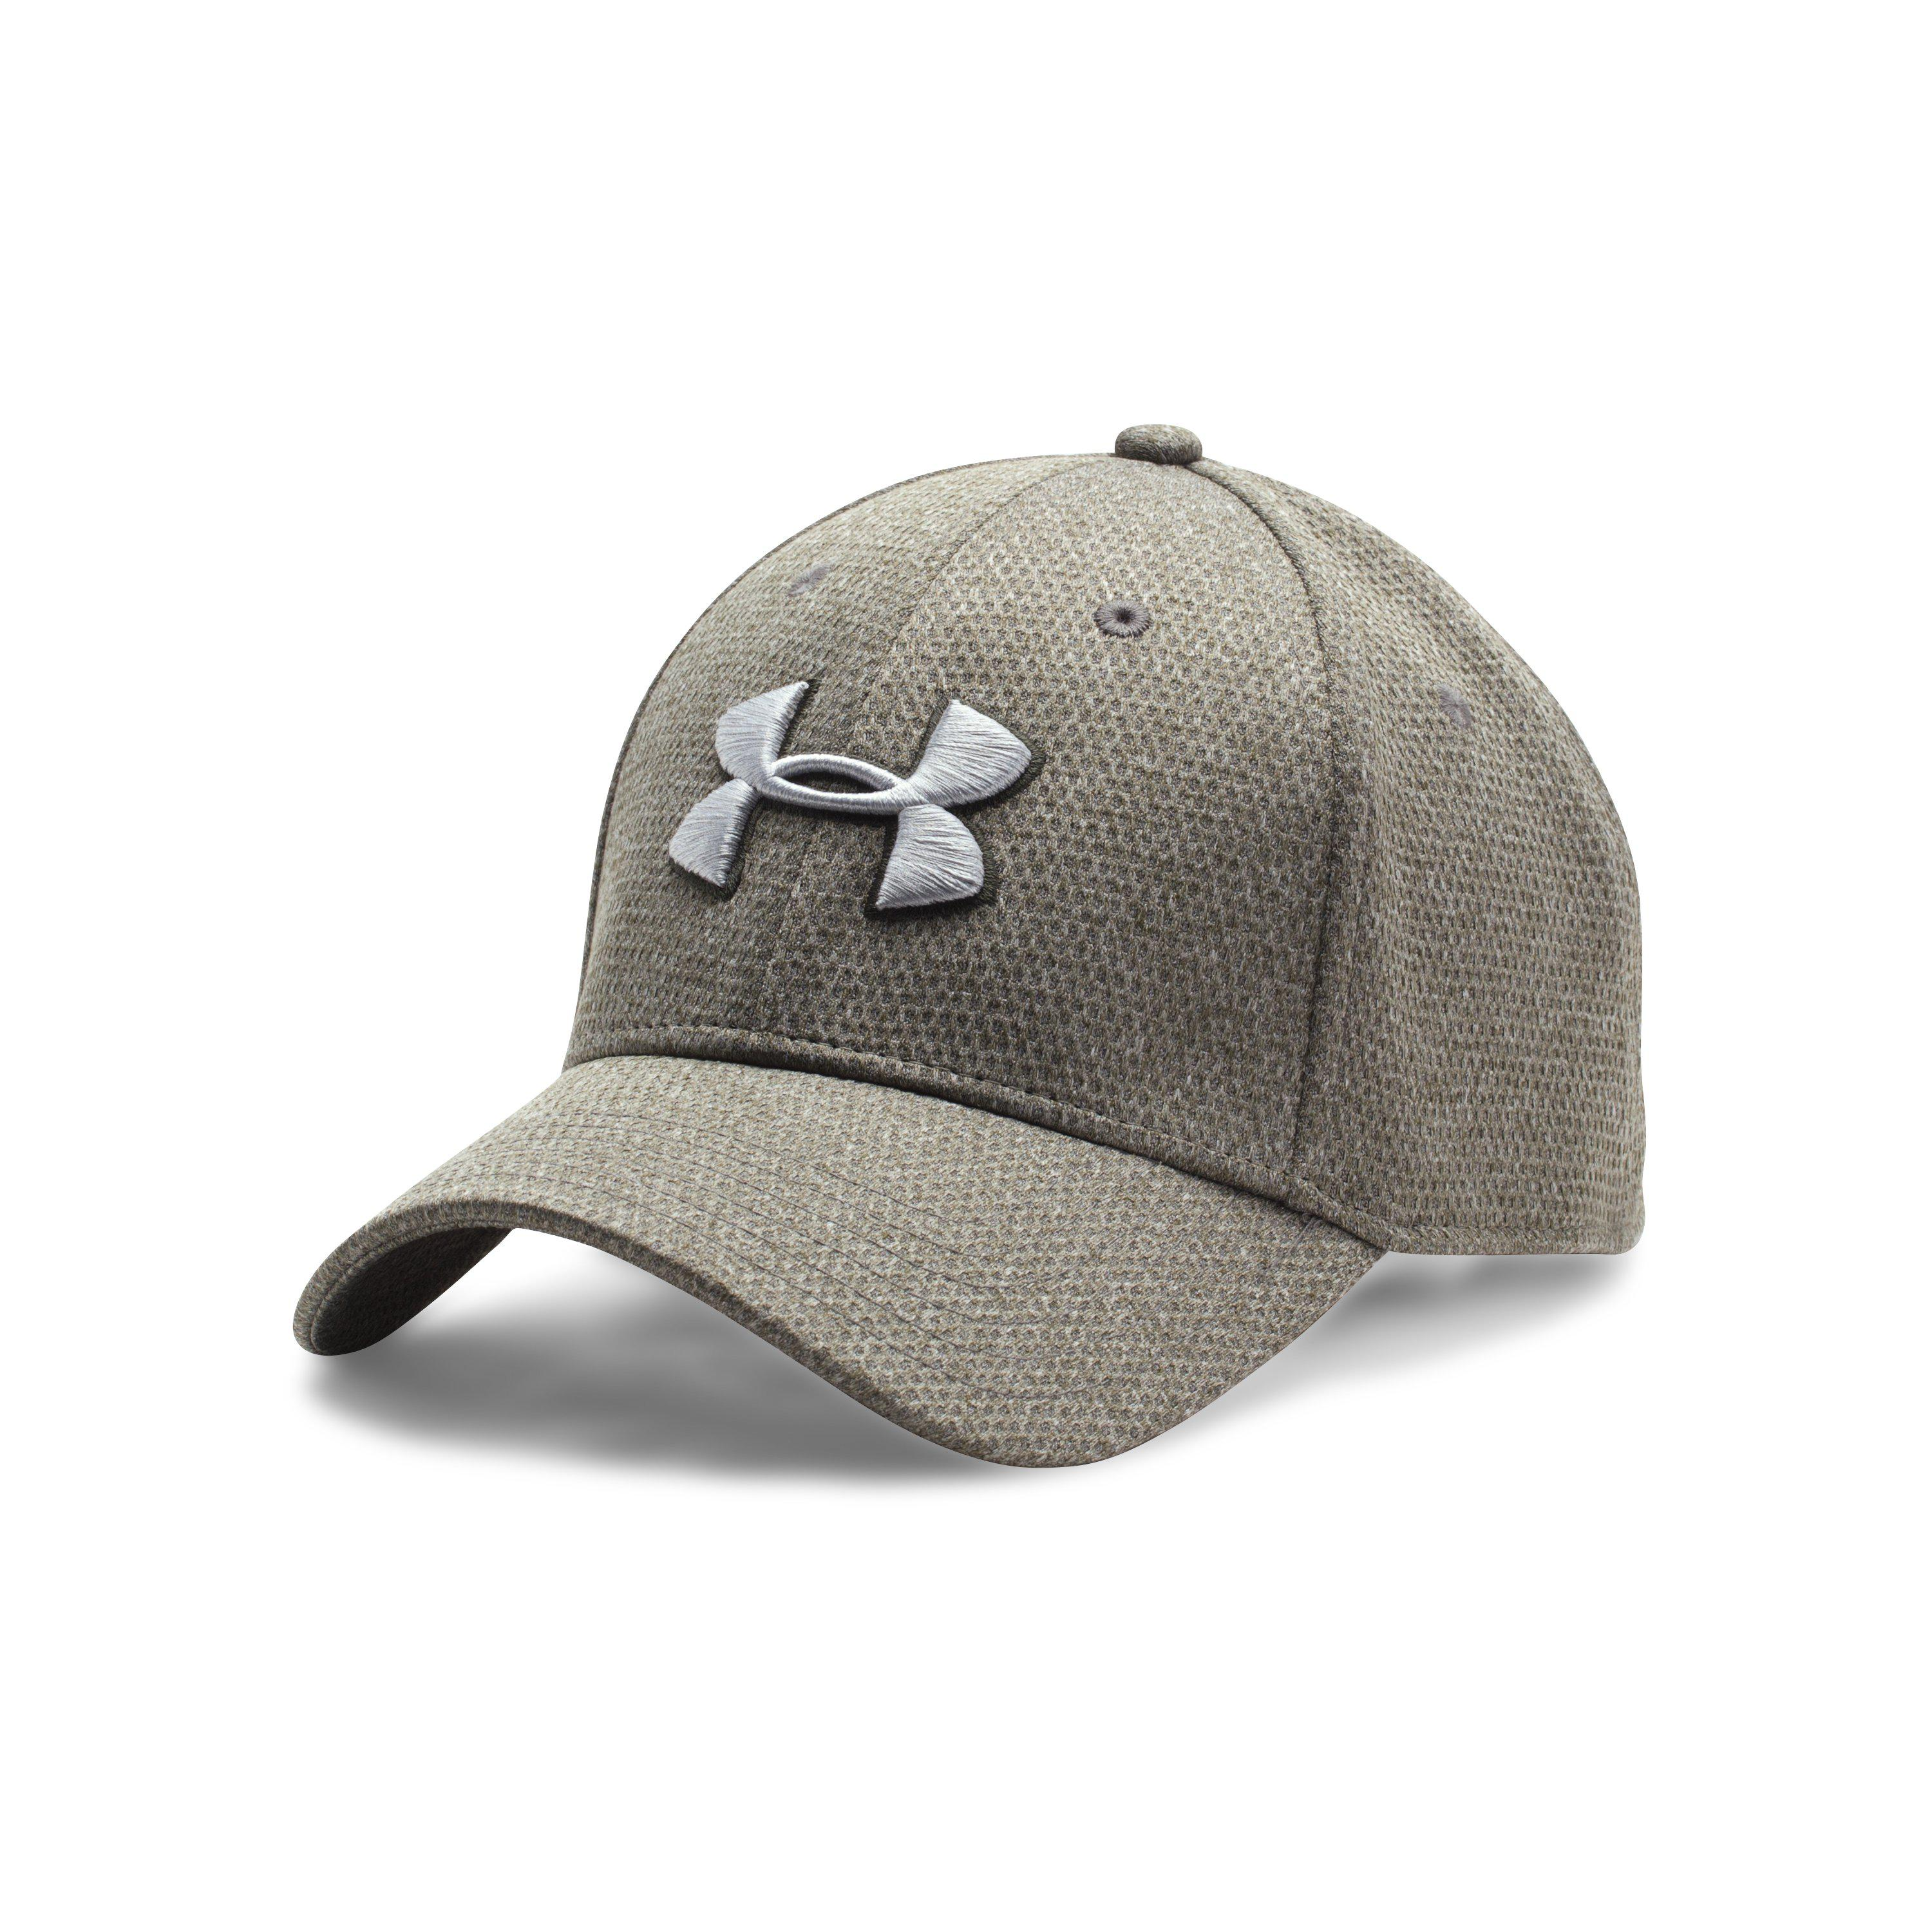 0f127761efd Lyst - Under Armour Men s Ua Heathered Blitzing Cap in Green for Men